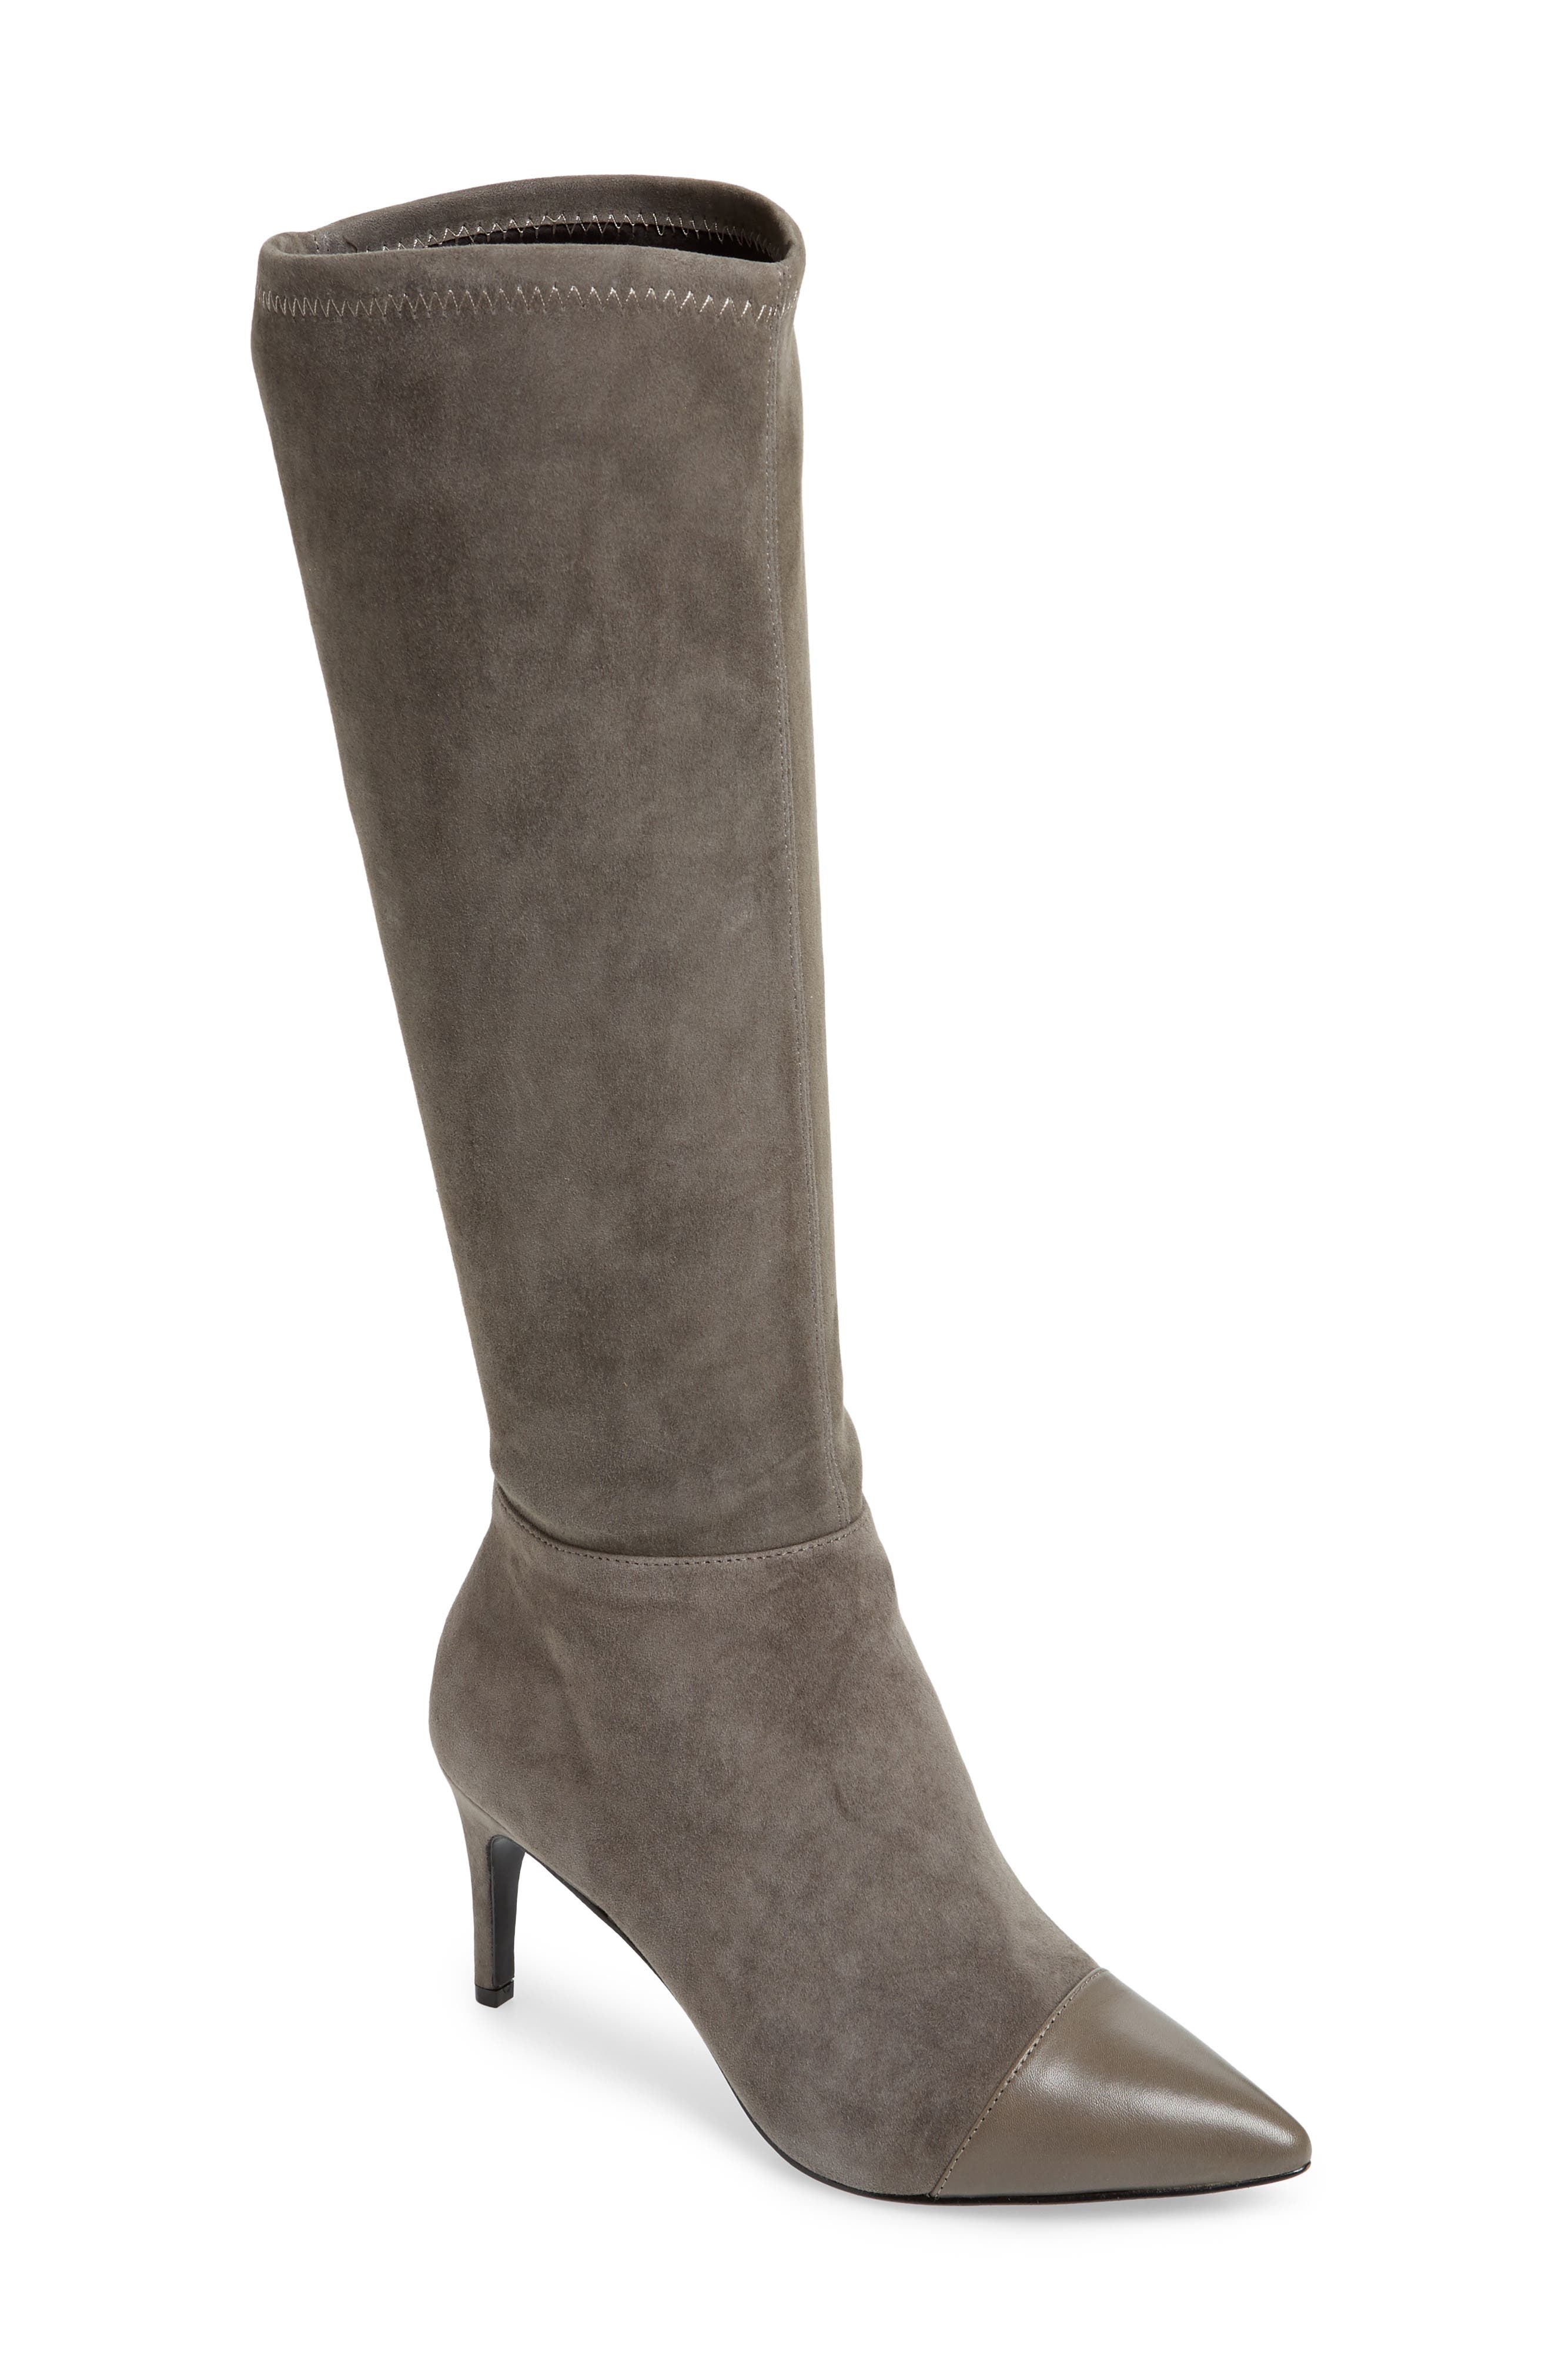 CHARLES DAVID Women'S Parish Pointed Toe Suede & Leather Boots in Gray